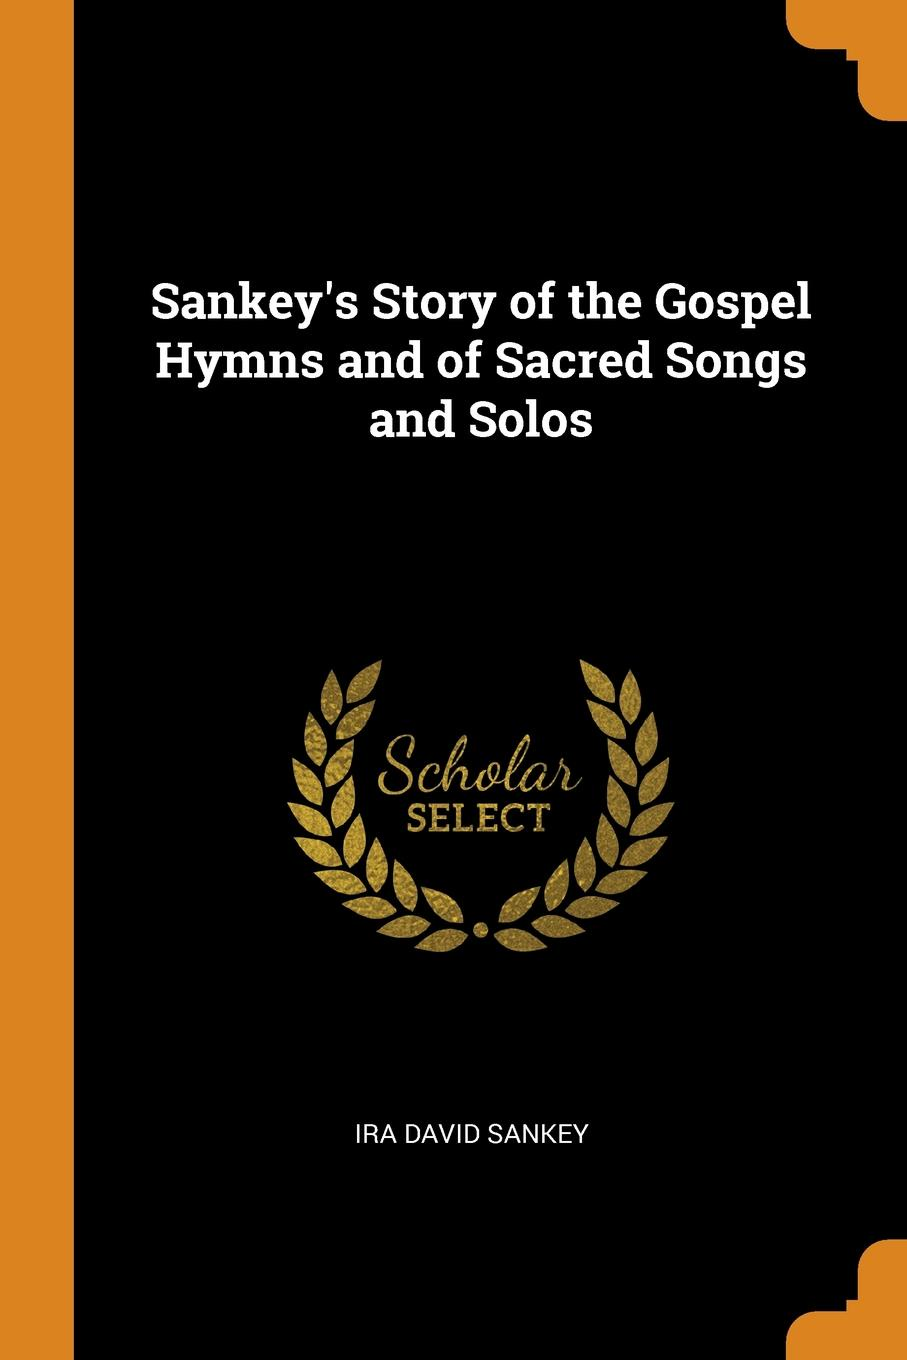 Ira David Sankey Sankey.s Story of the Gospel Hymns and of Sacred Songs and Solos sankey ira david 1840 1908 my life and the story of the gospel hymns and of sacred songs and solos